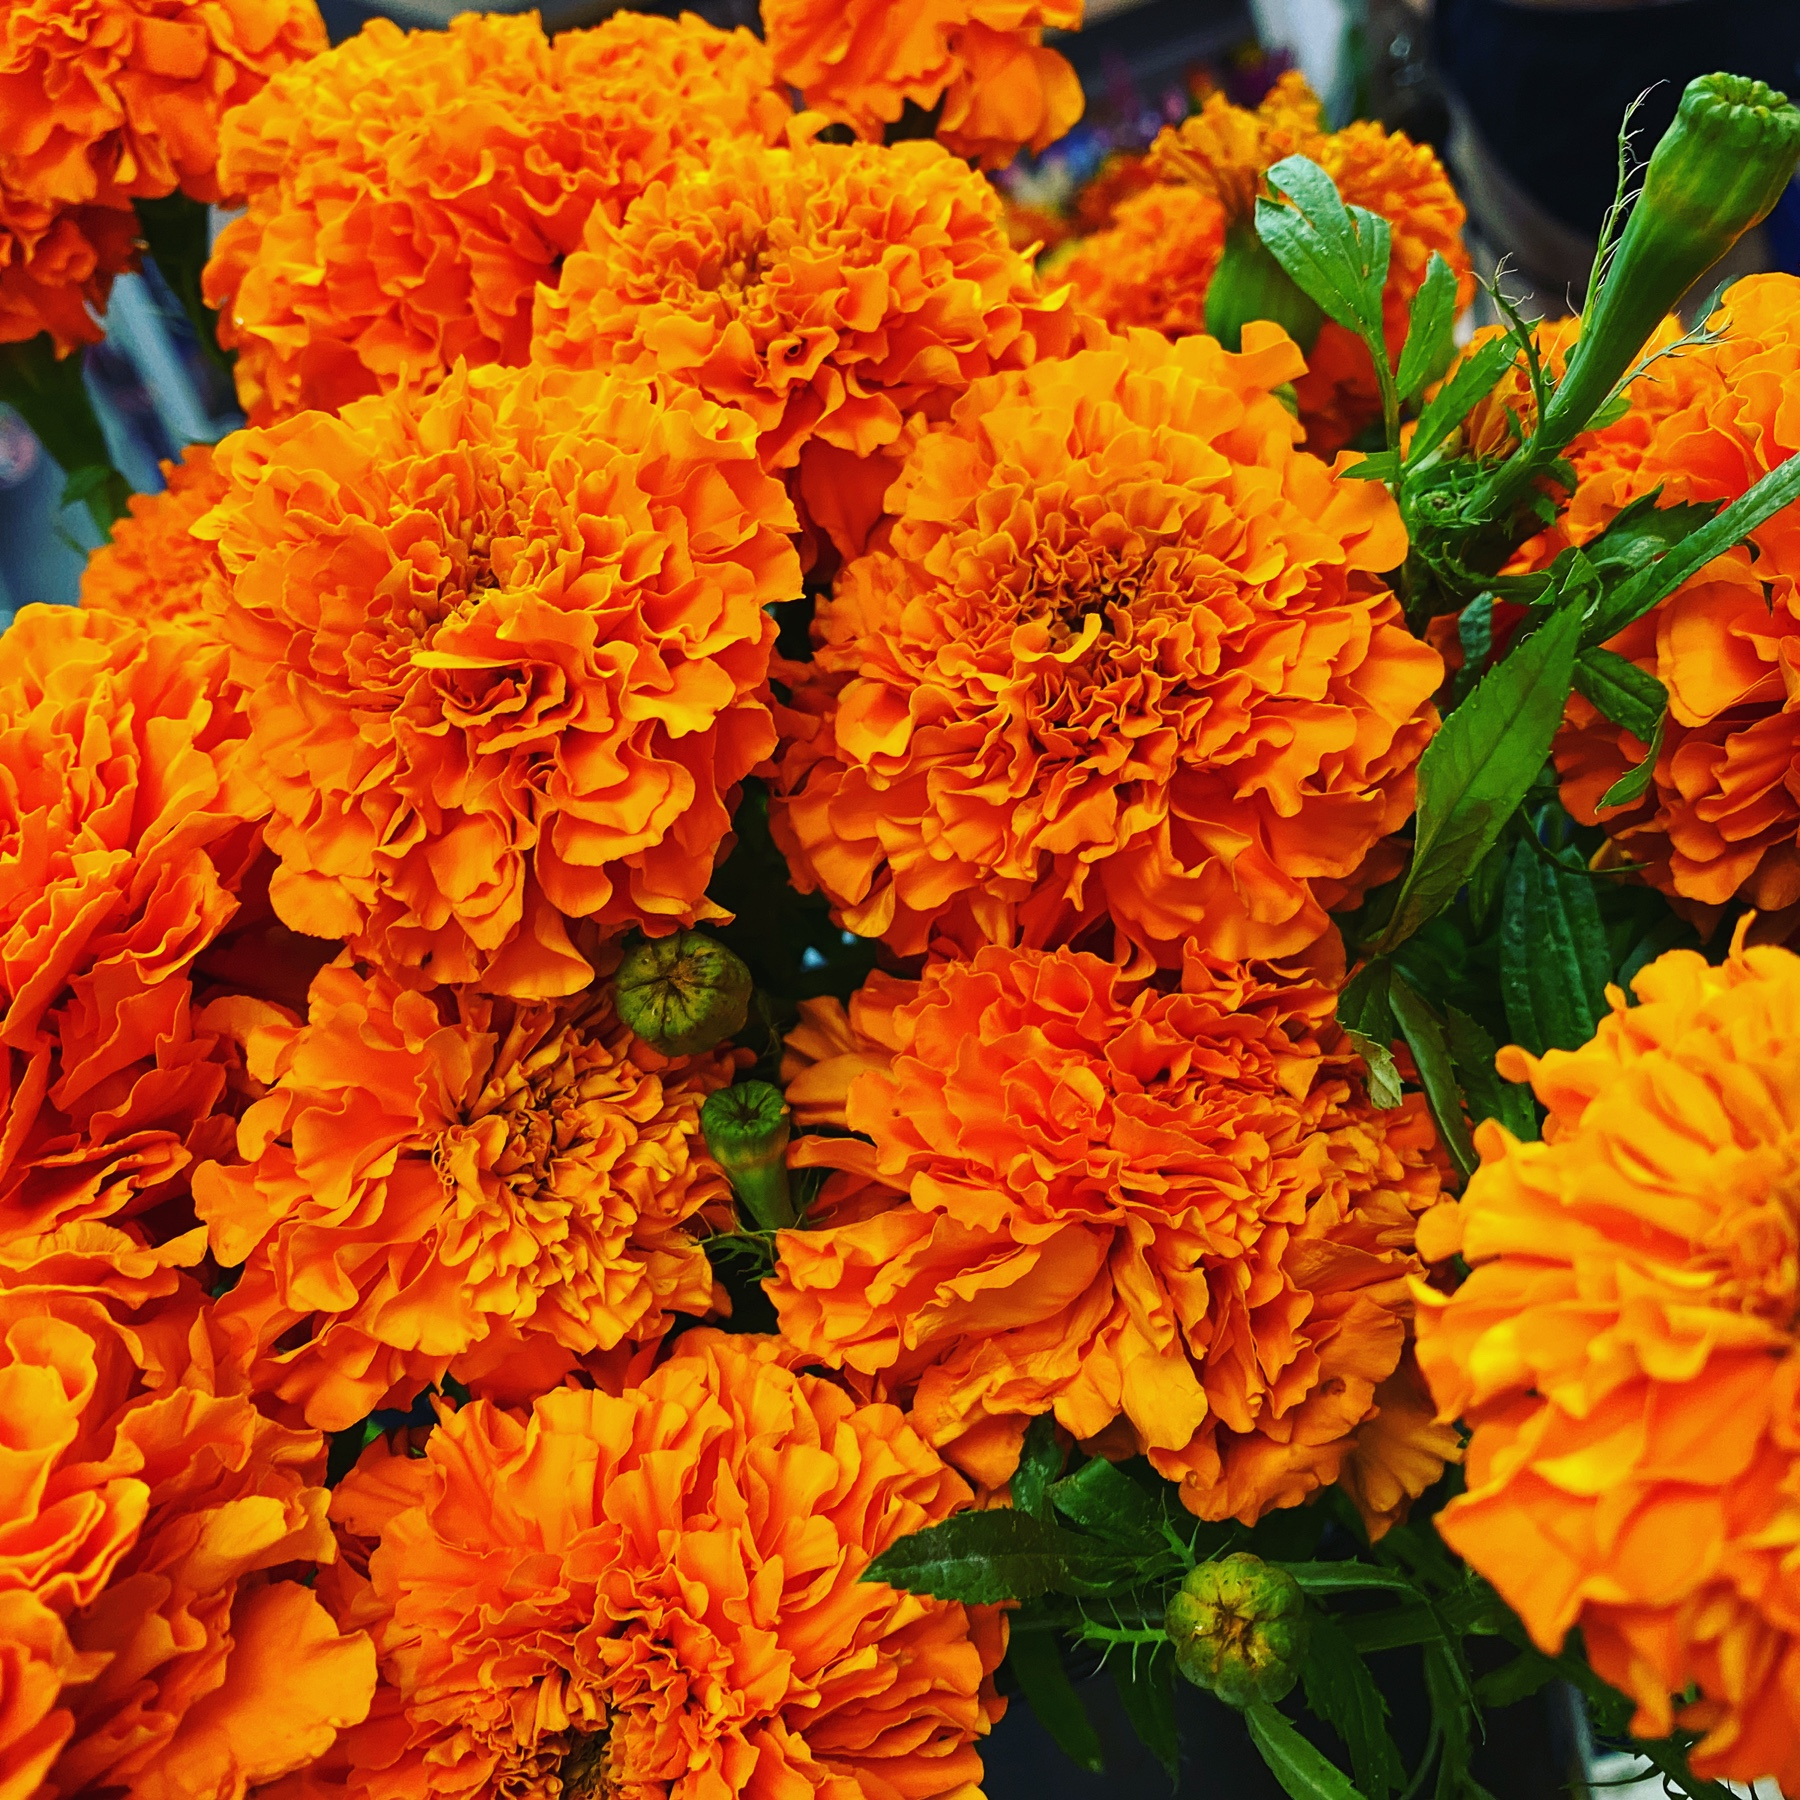 DiBella Flowers & Gifts Las Vegas - Fall has officially arrived with fresh marigolds.